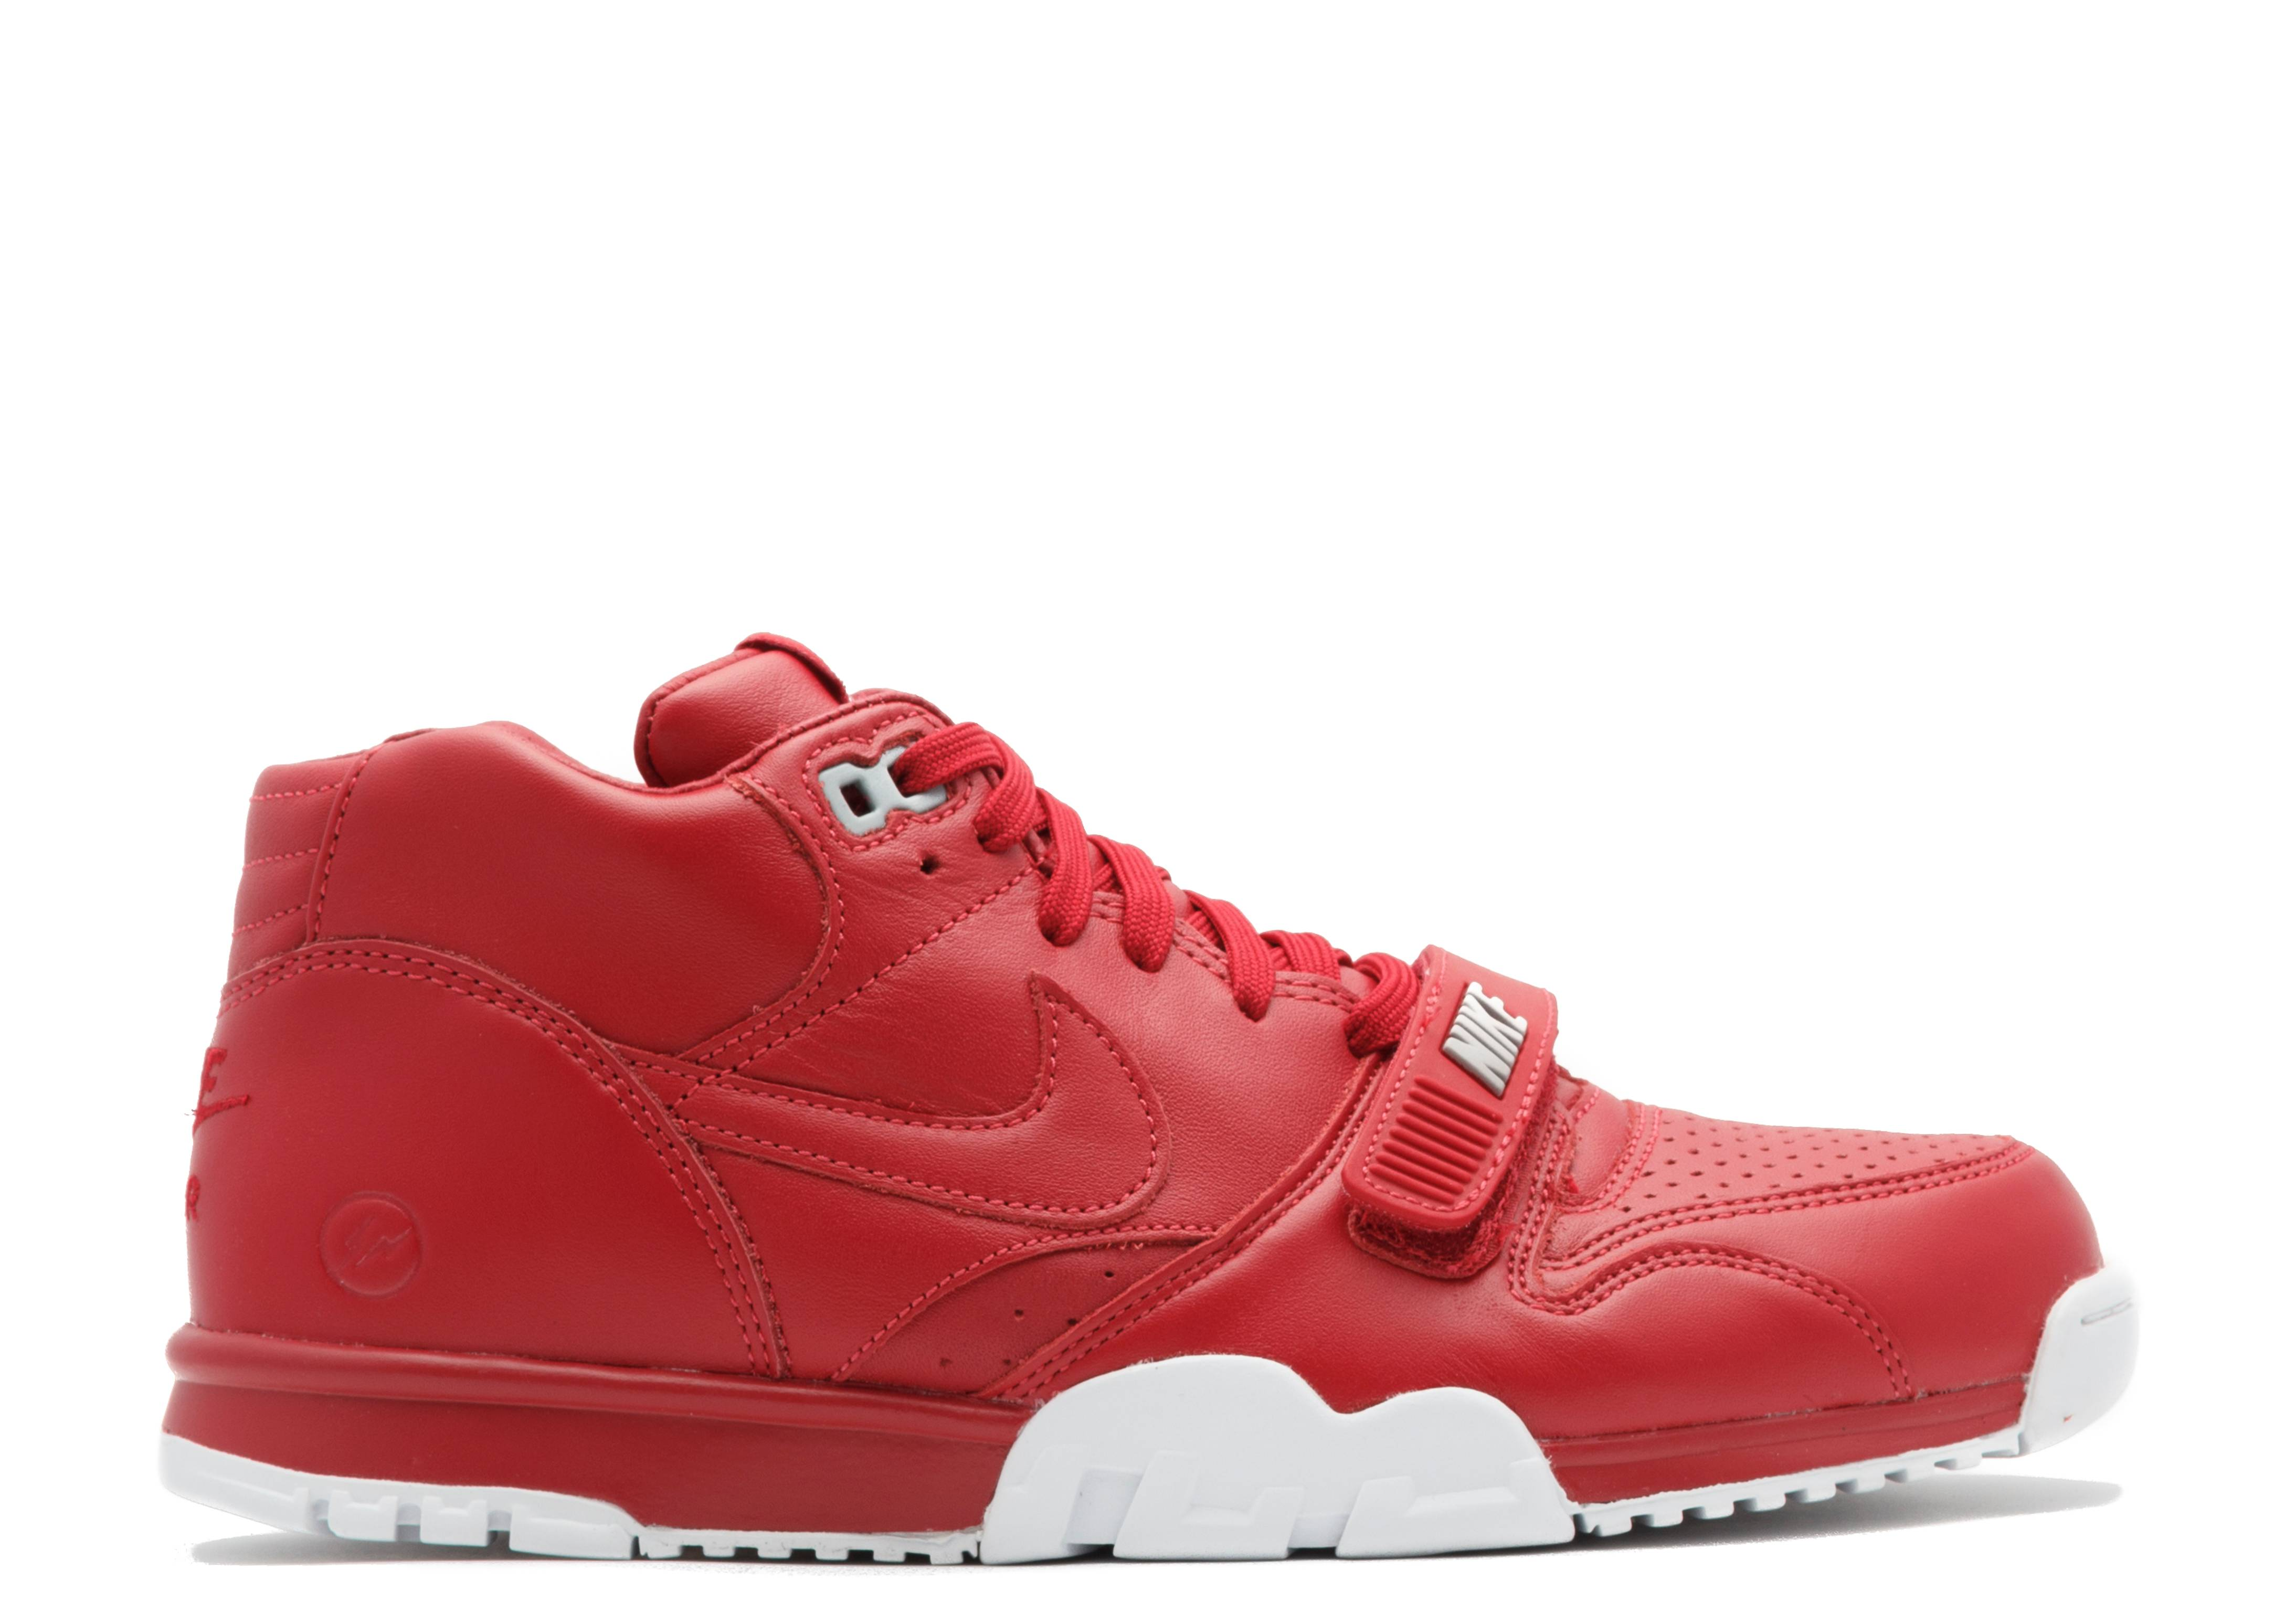 big sale 0e2dc 6e7bf Air Trainer 1 Mid Sp fragment - Nike - 806942 661 - gym red gym red-white    Flight Club